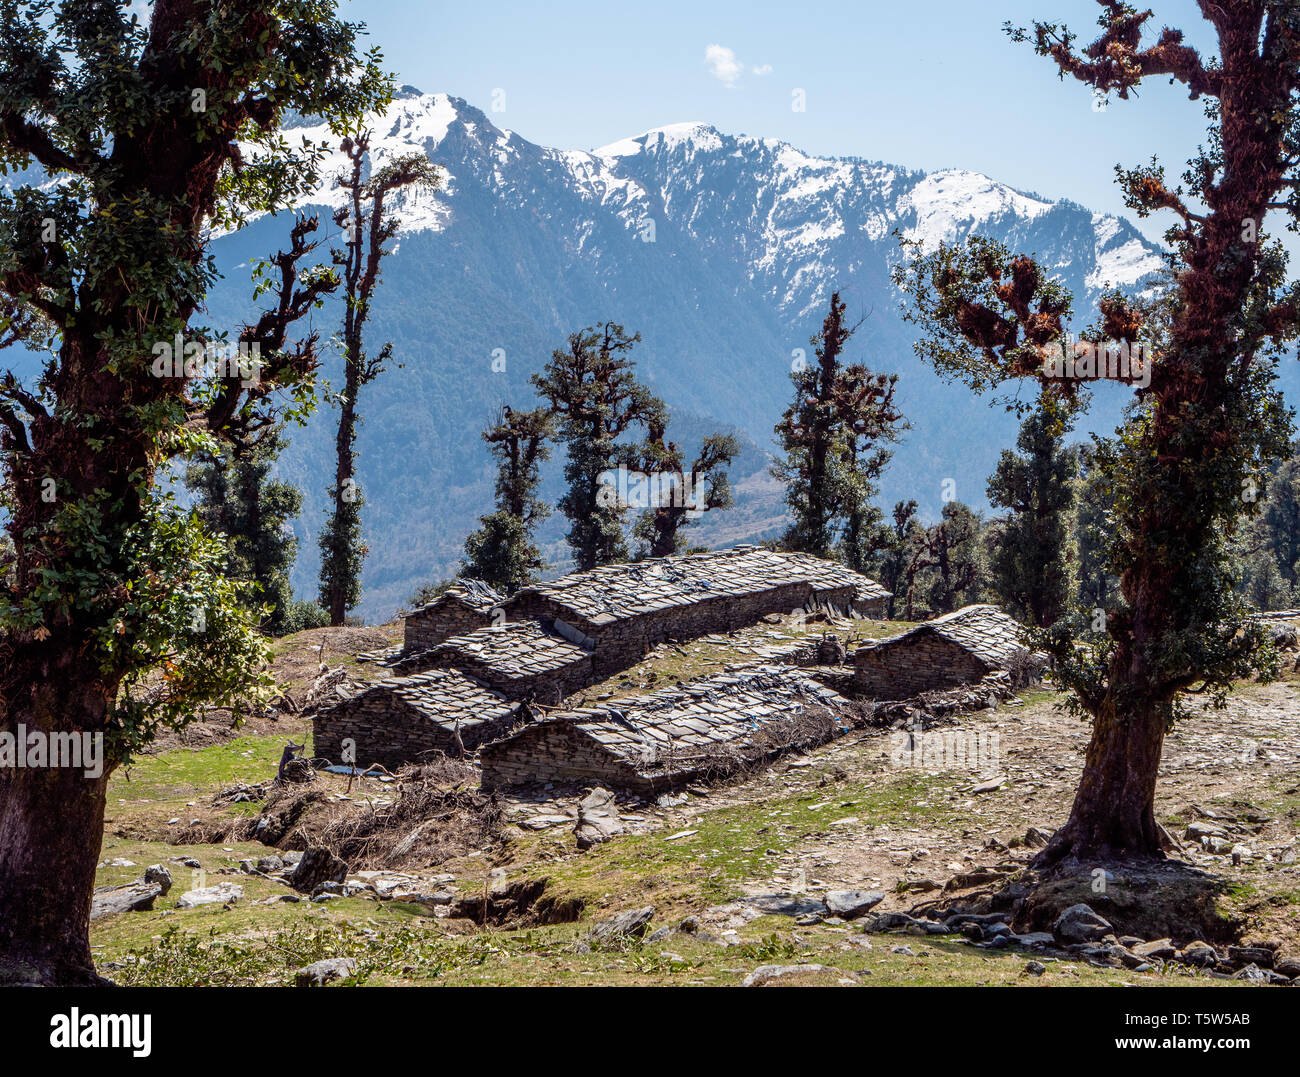 Stone shepherd's huts and animal shelters in high alpine pastures in the Himalayas above the Saryu Valley in Uttarakhand Northern India - Stock Image